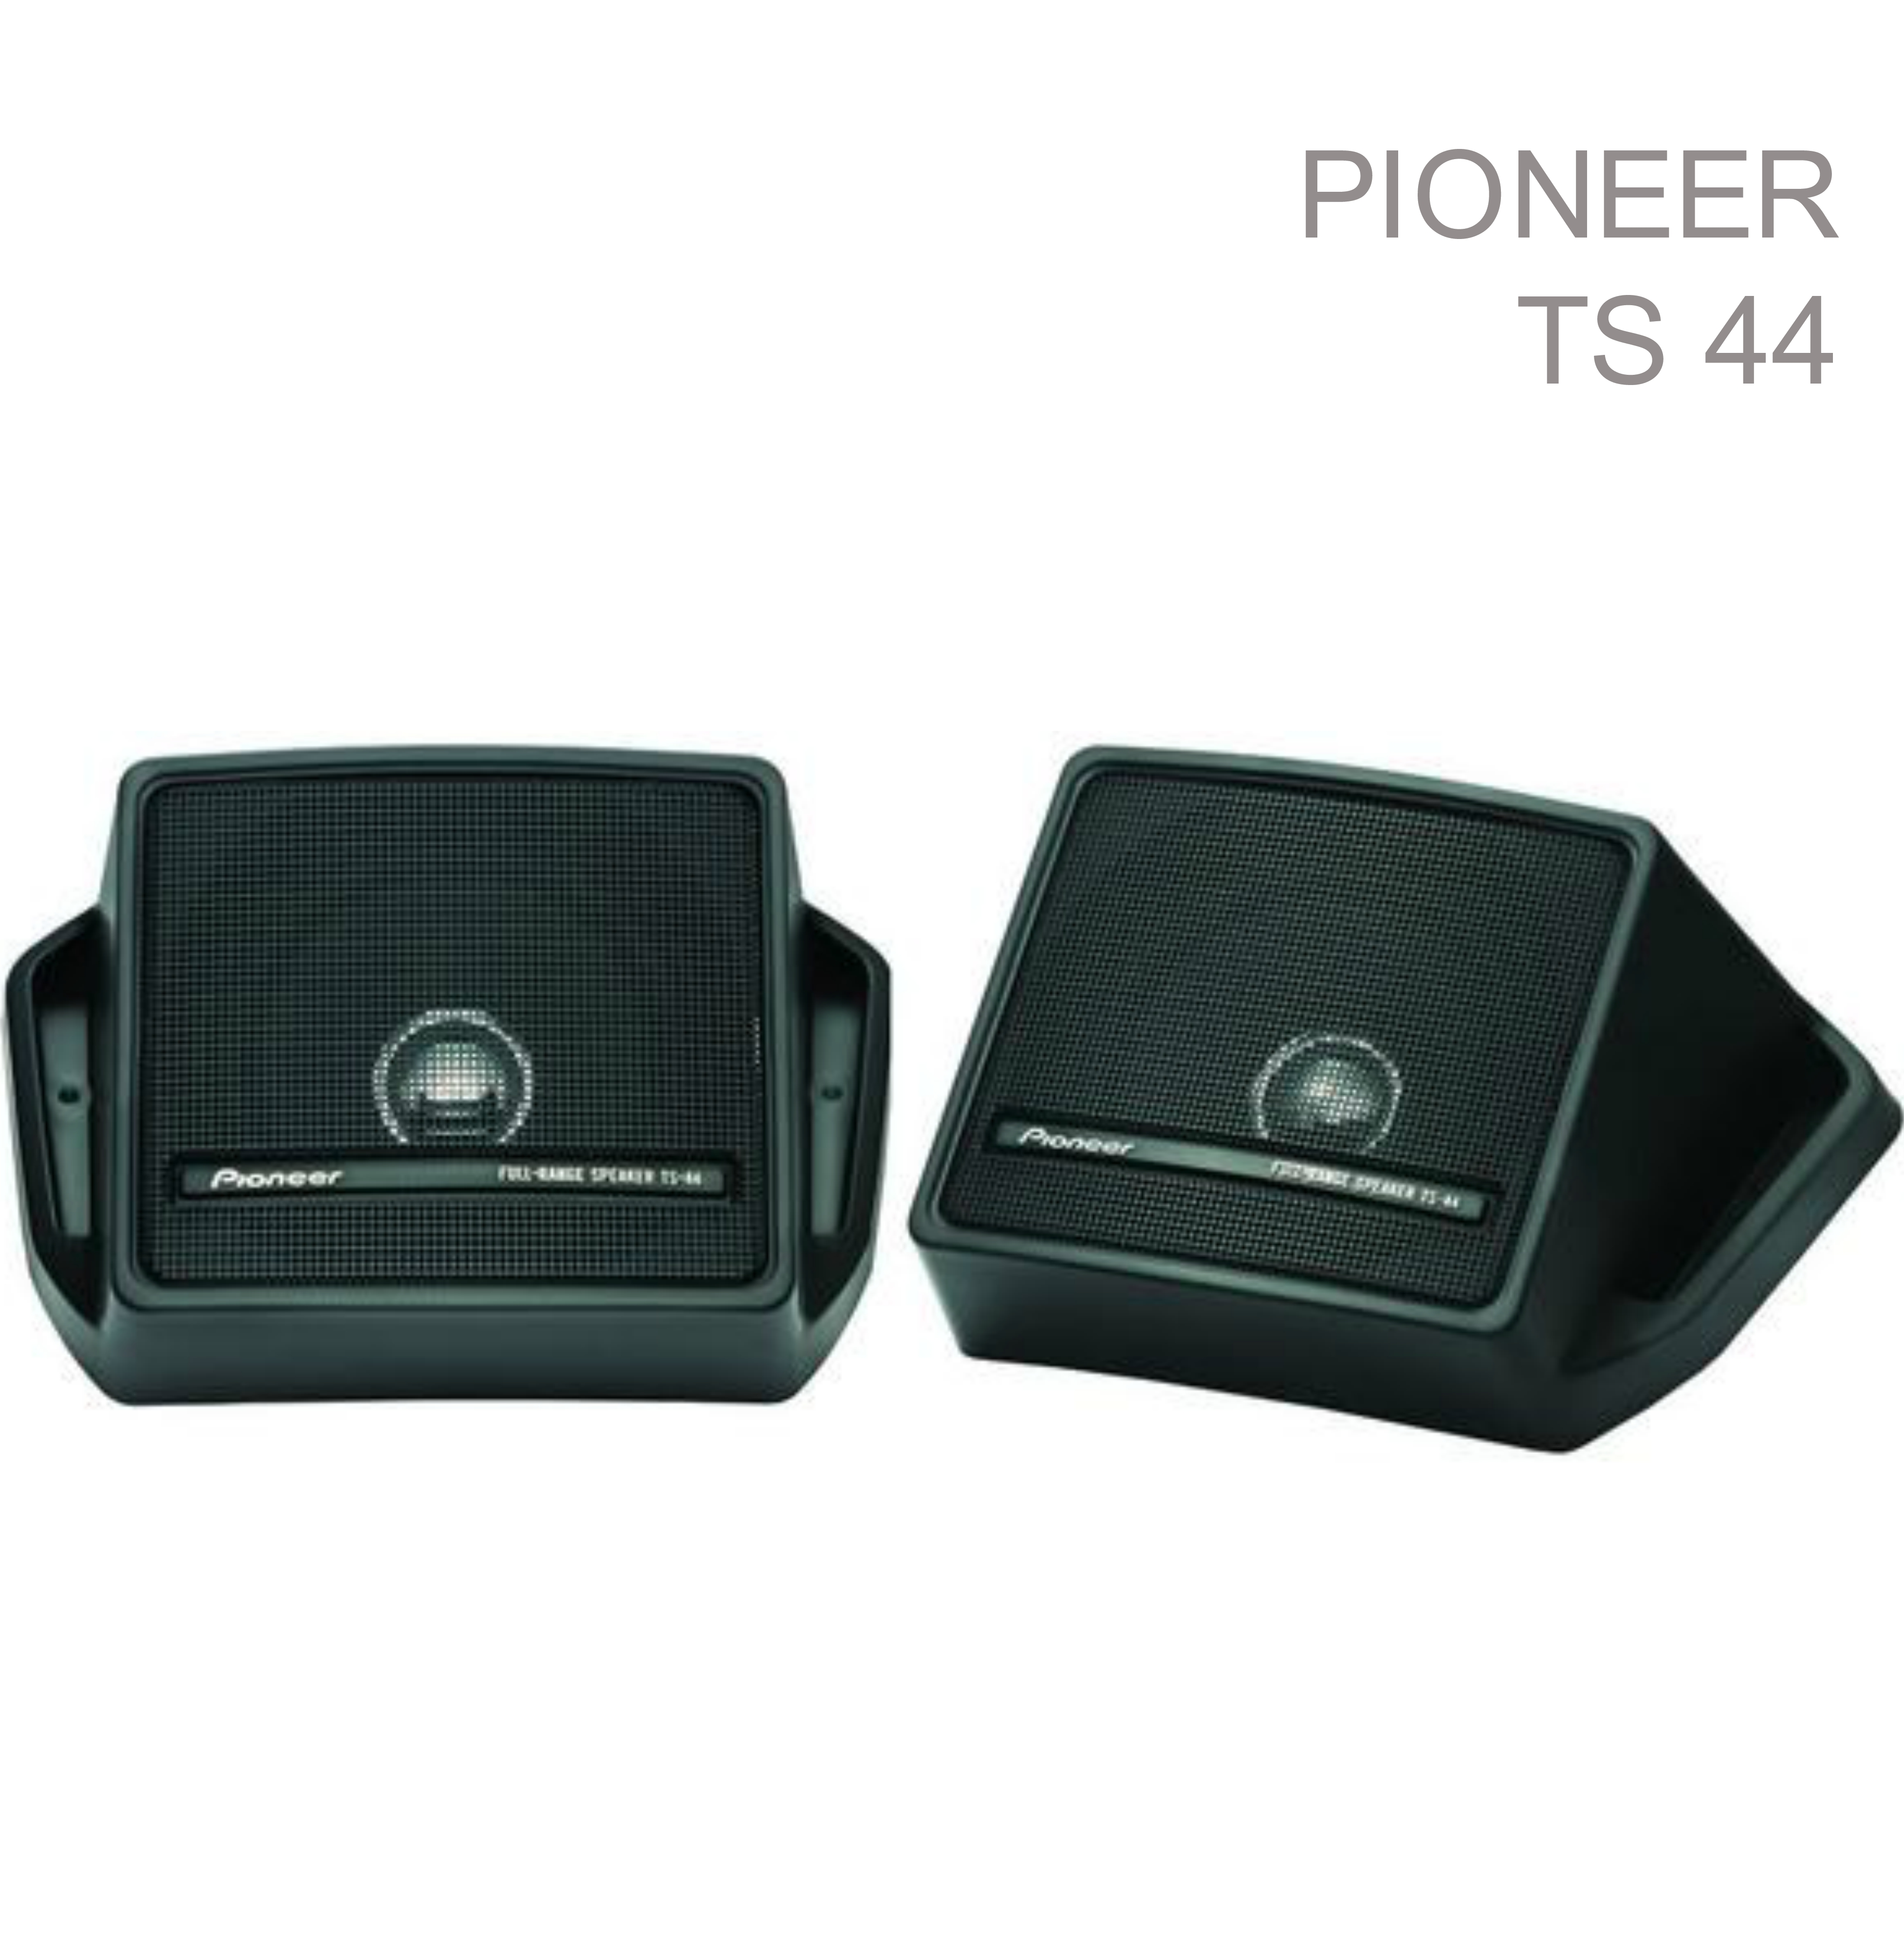 PIONEER TS 44 In Car Audio Sound Speaker Set